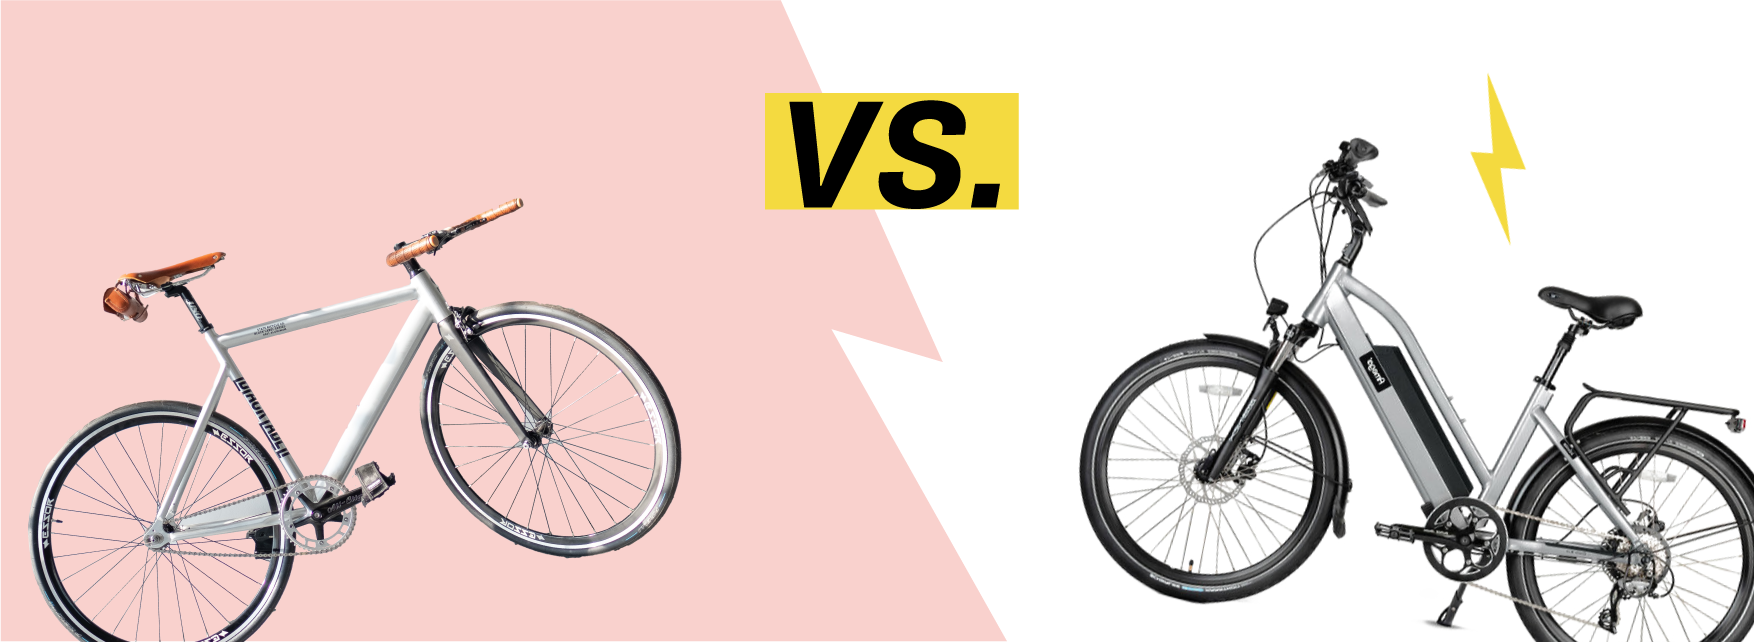 ebike vs road bike - which one is the better fit for food couriers?